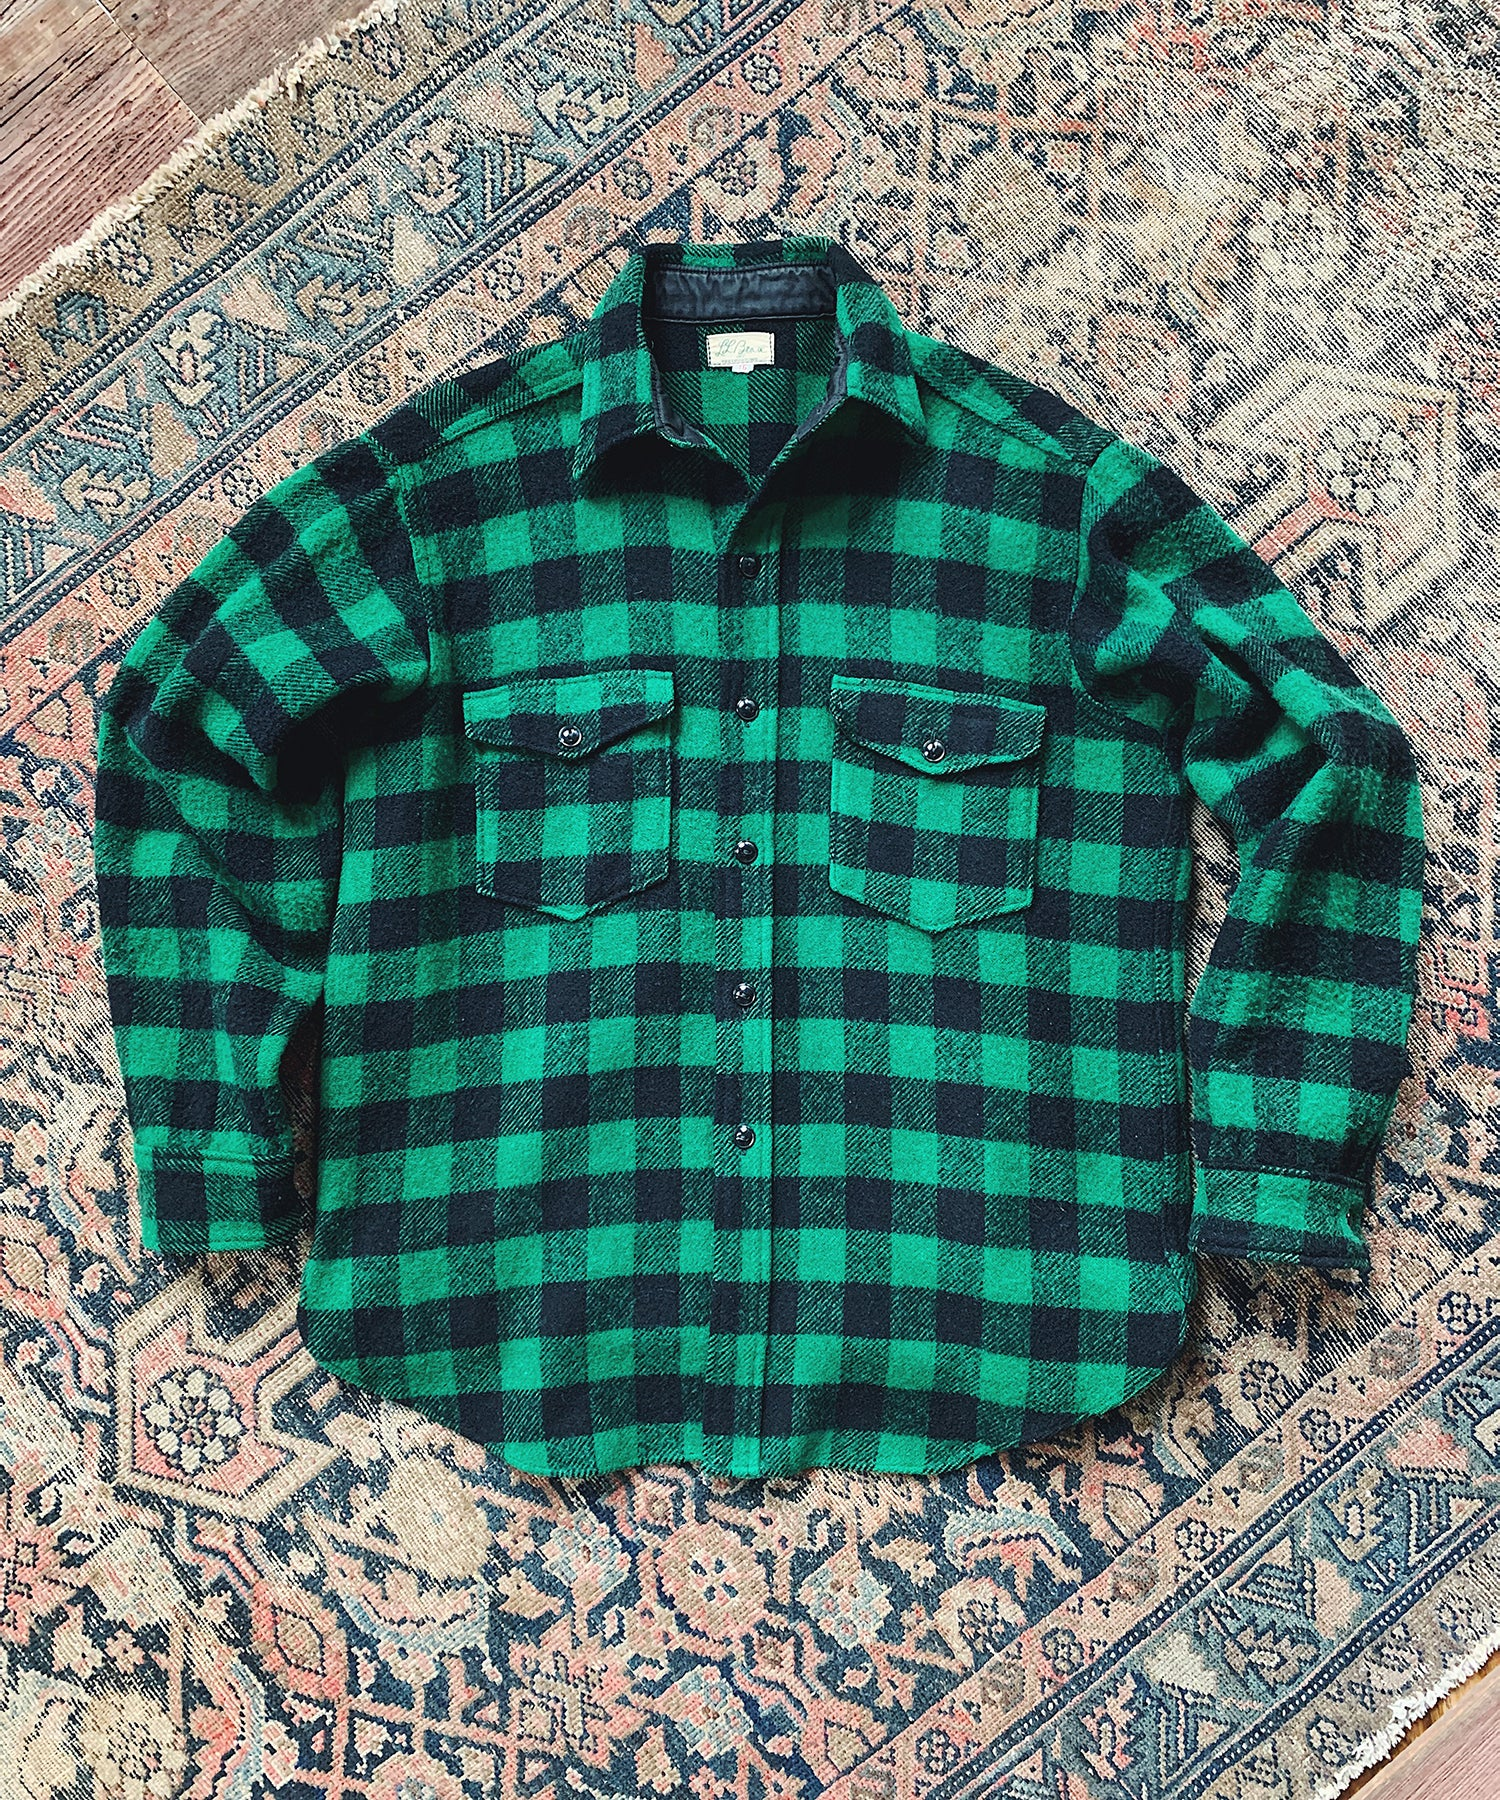 Item #5 - Todd Snyder x Wooden Sleepers 1950's Maine Guide Shirt in Green Plaid - SOLD OUT